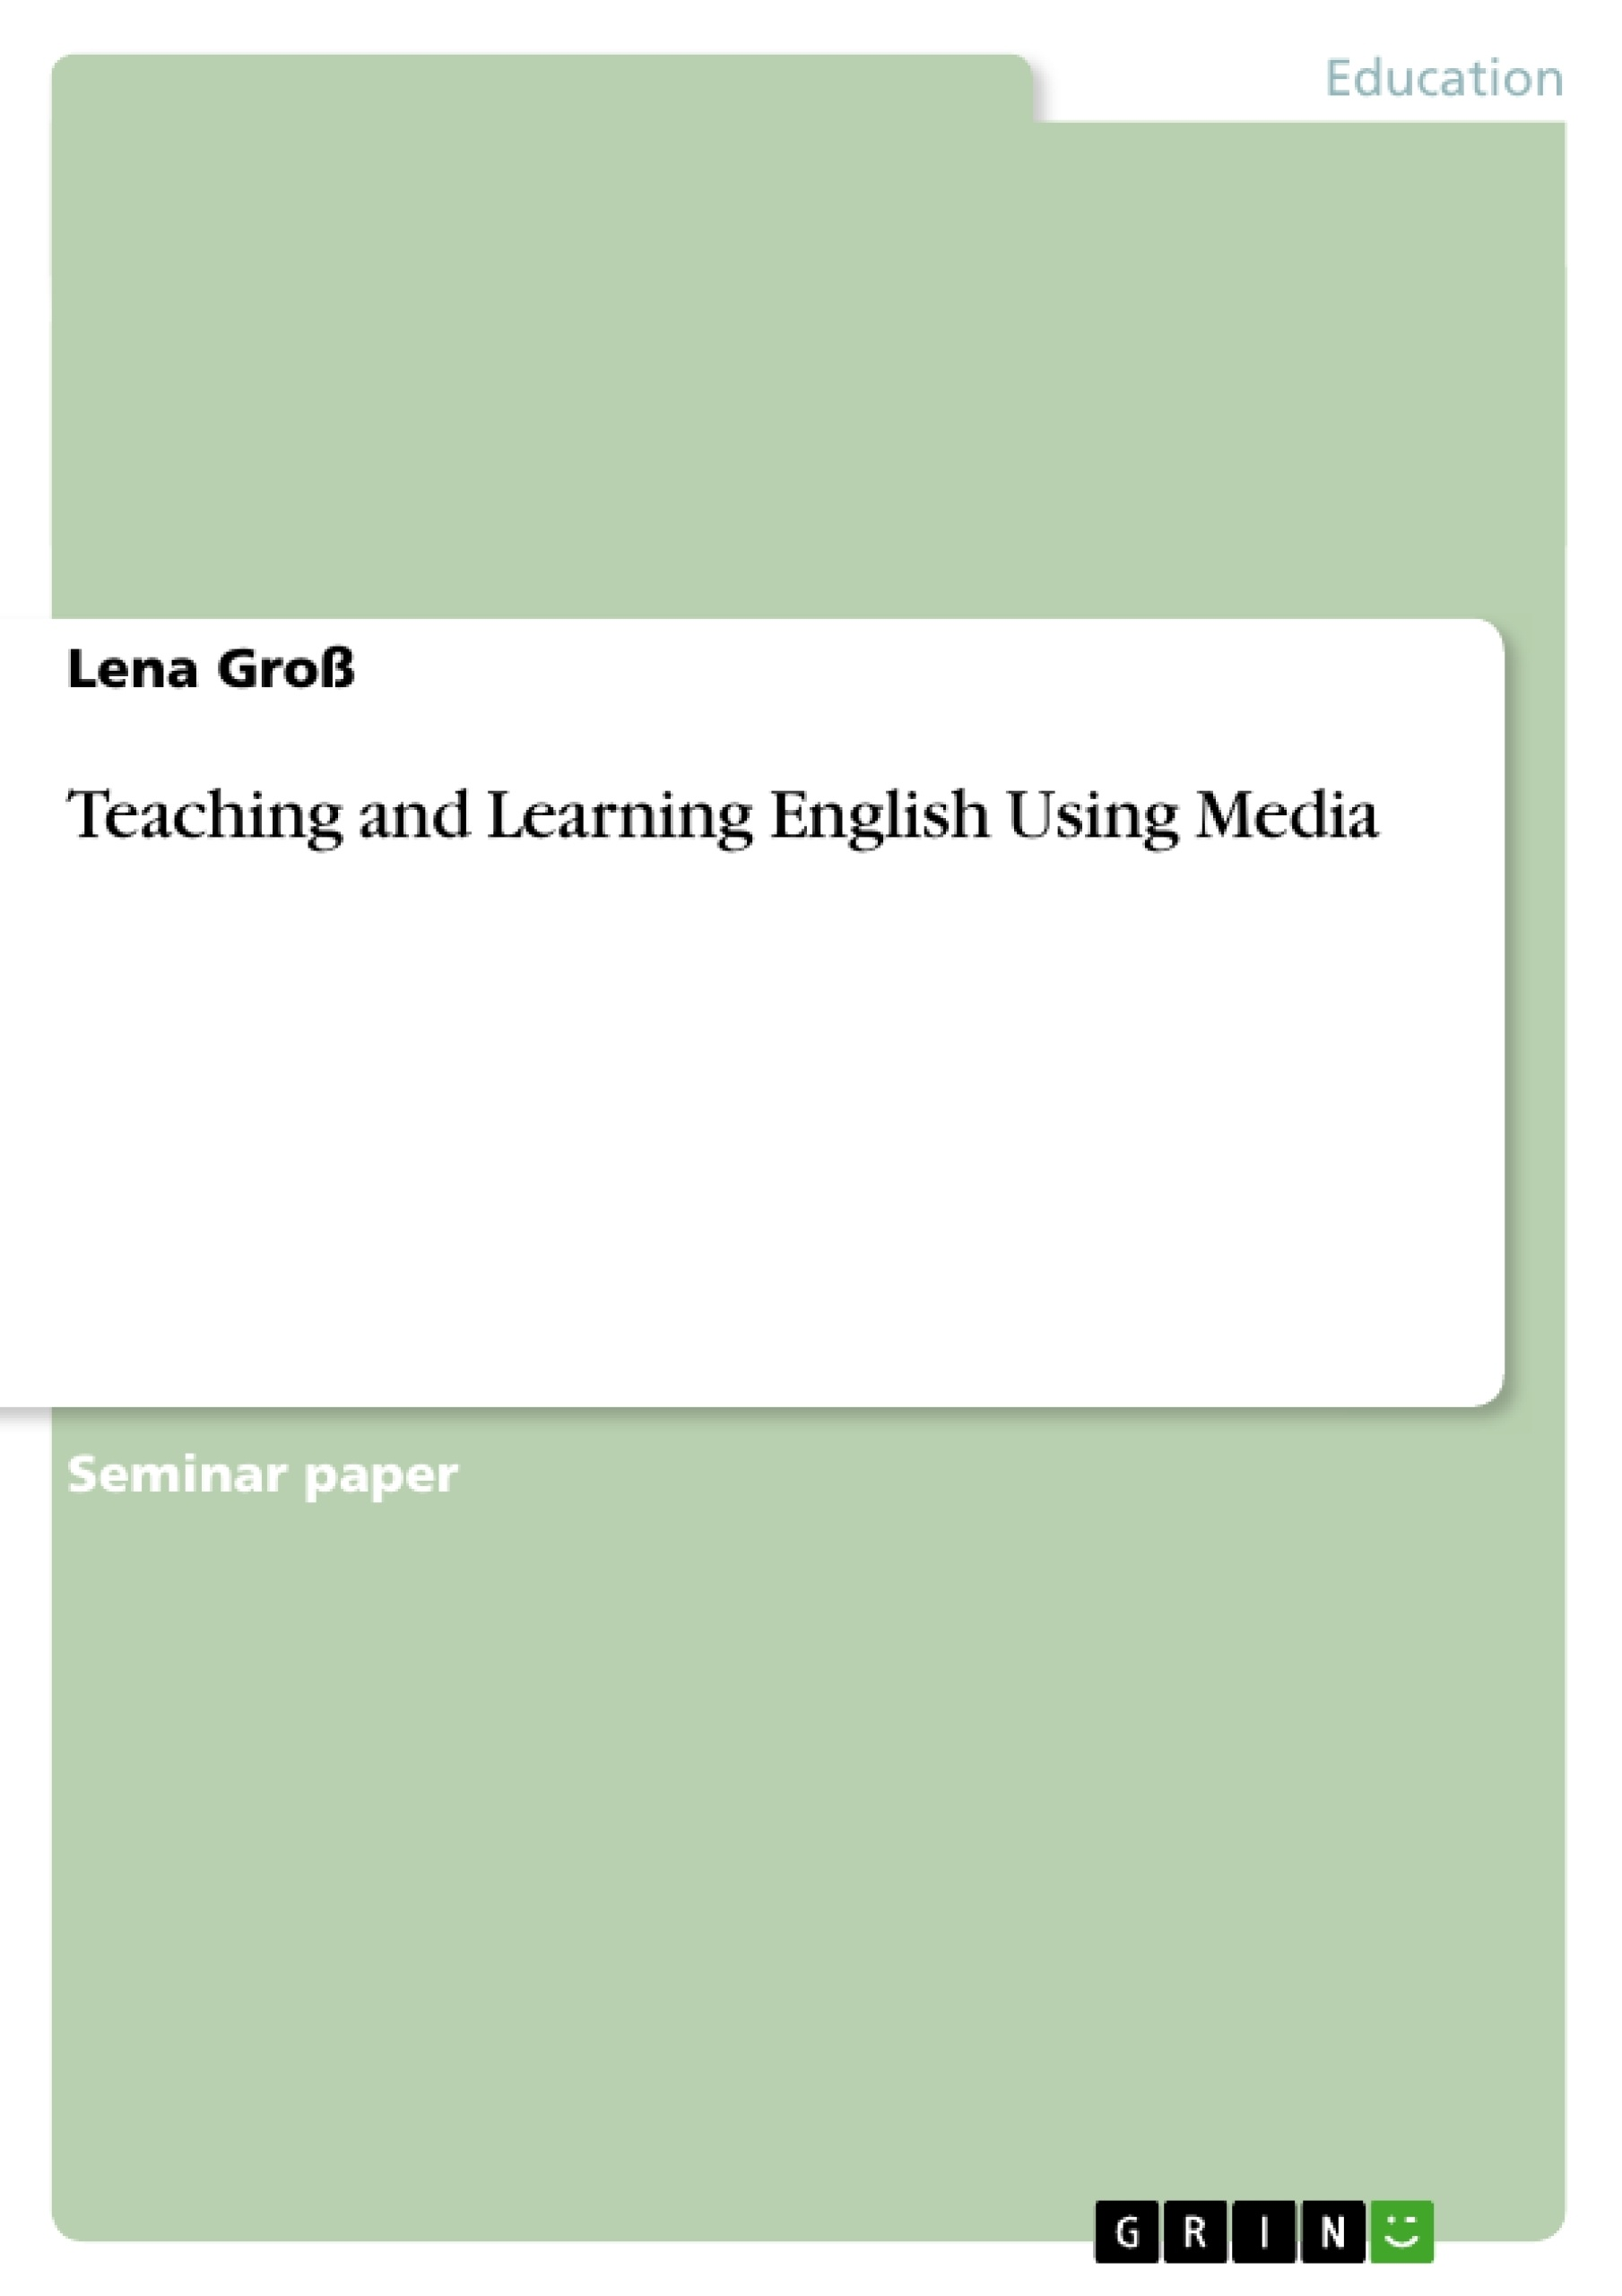 Title: Teaching and Learning English Using Media